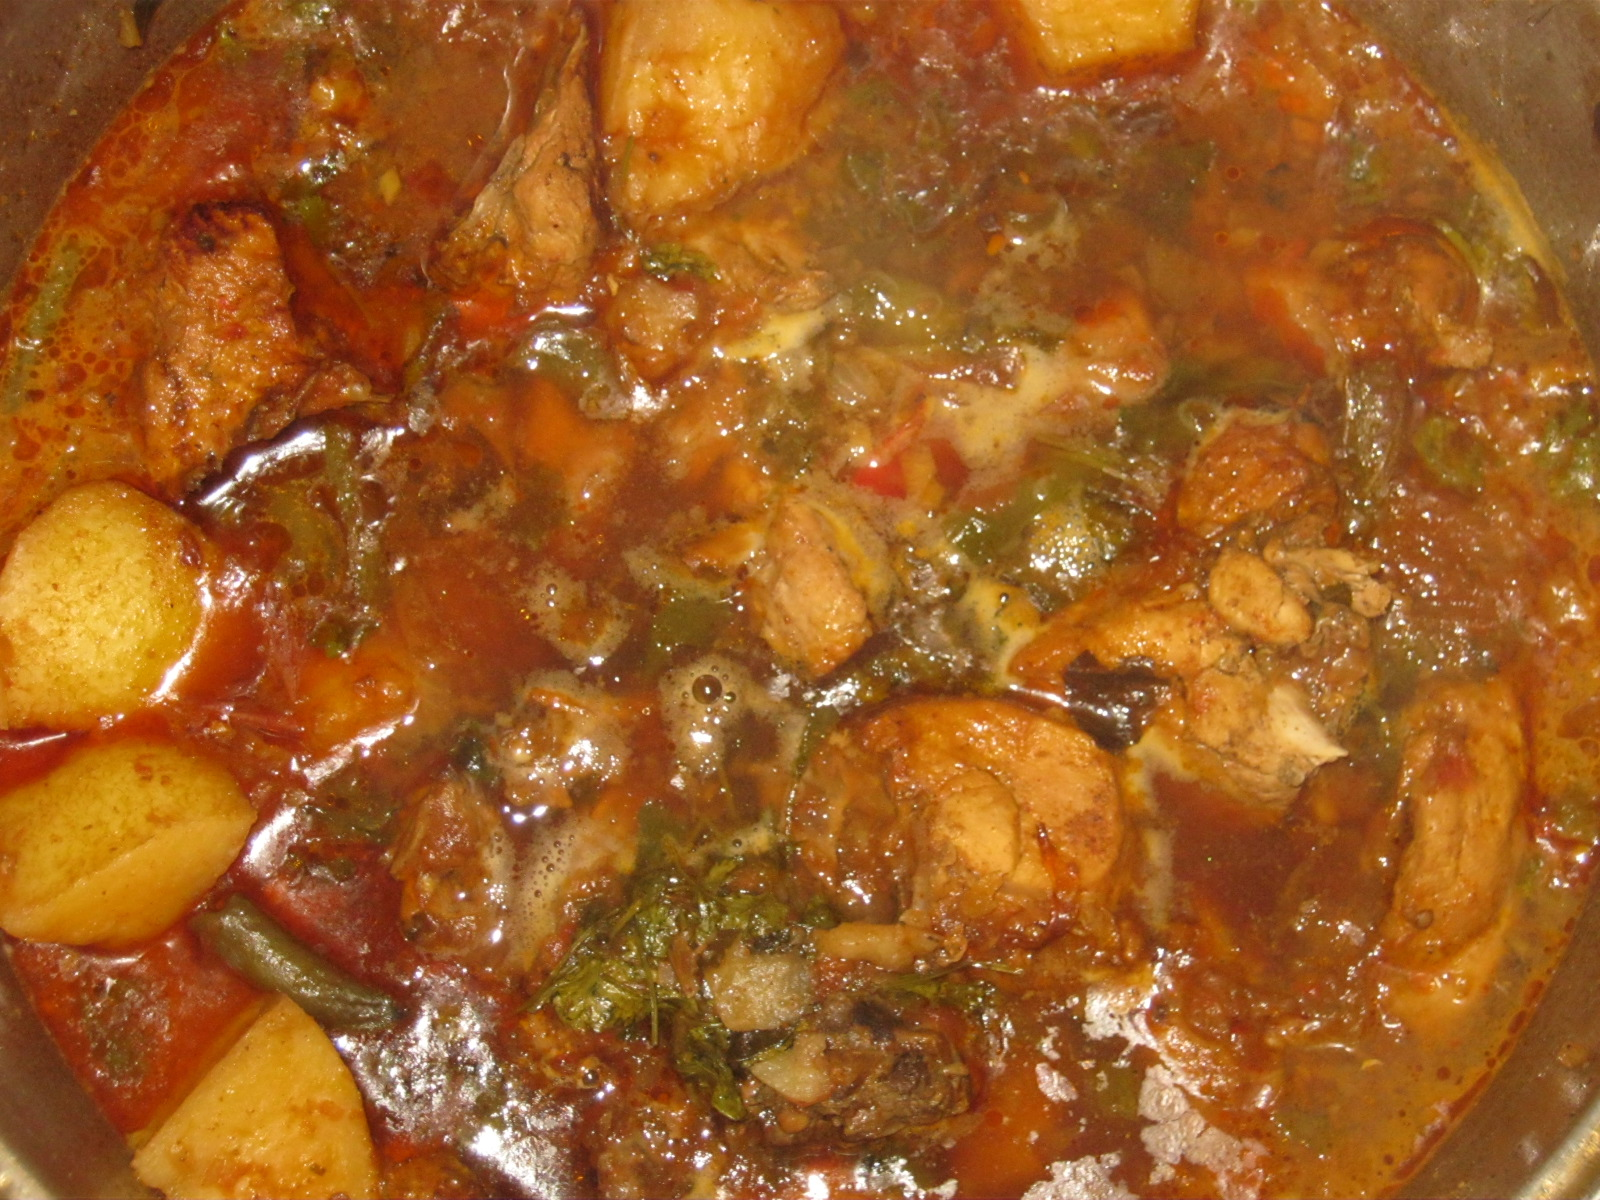 Traditional Durban Chicken Curry cooking in a pot